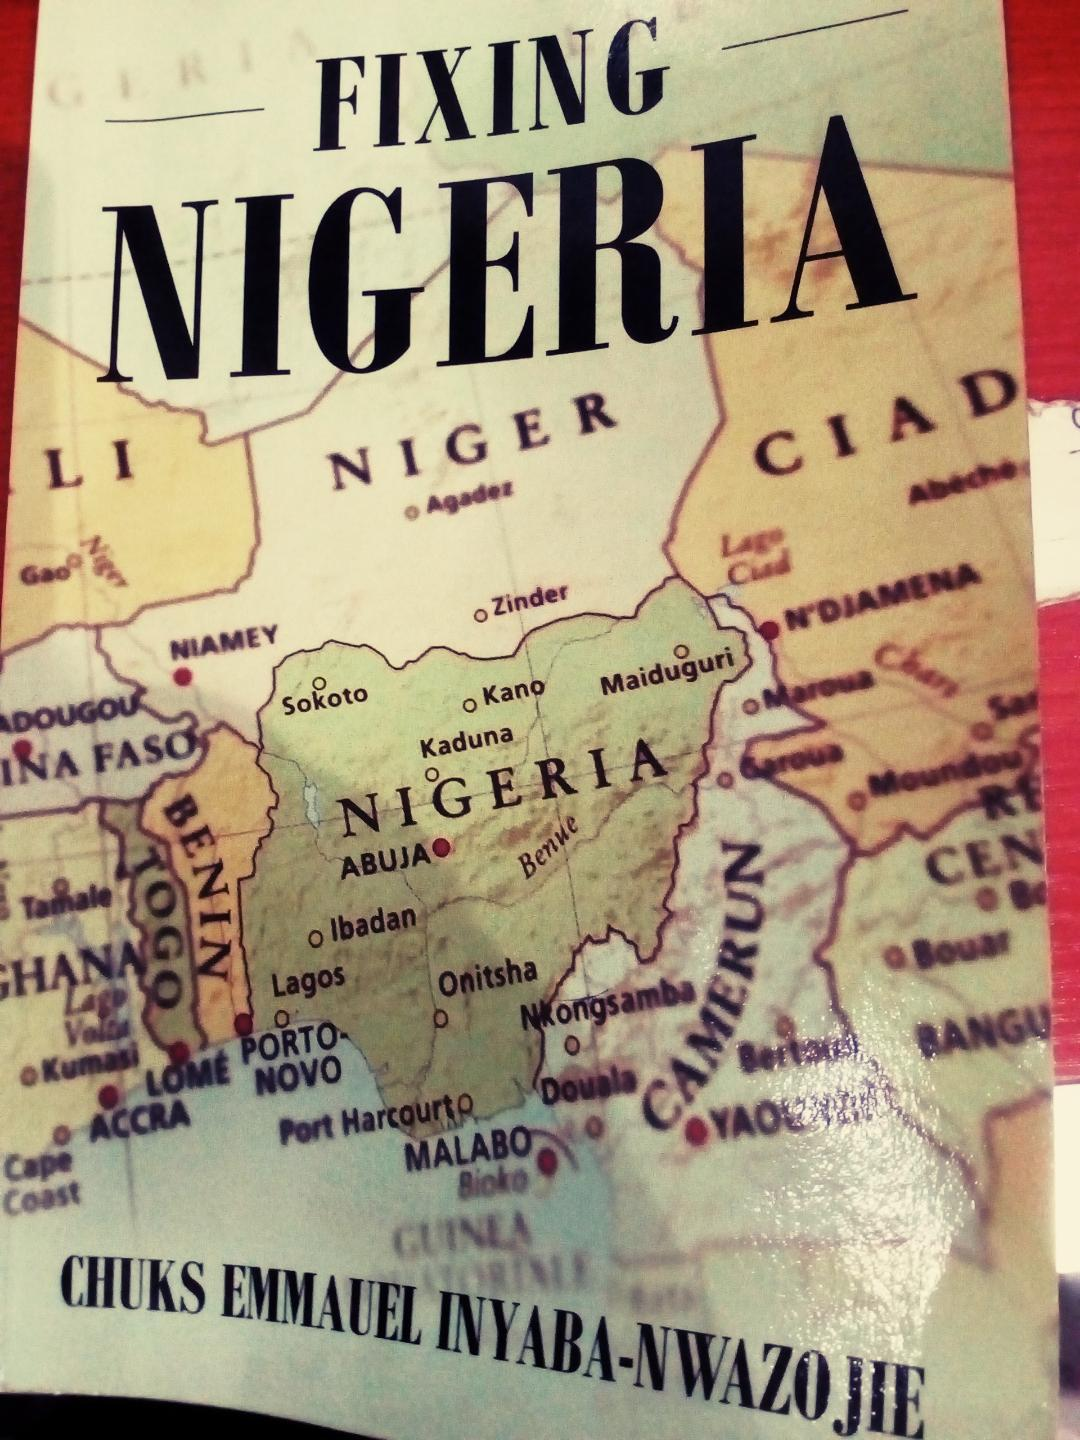 FIXING NIGERIA: A calse for national rebirth